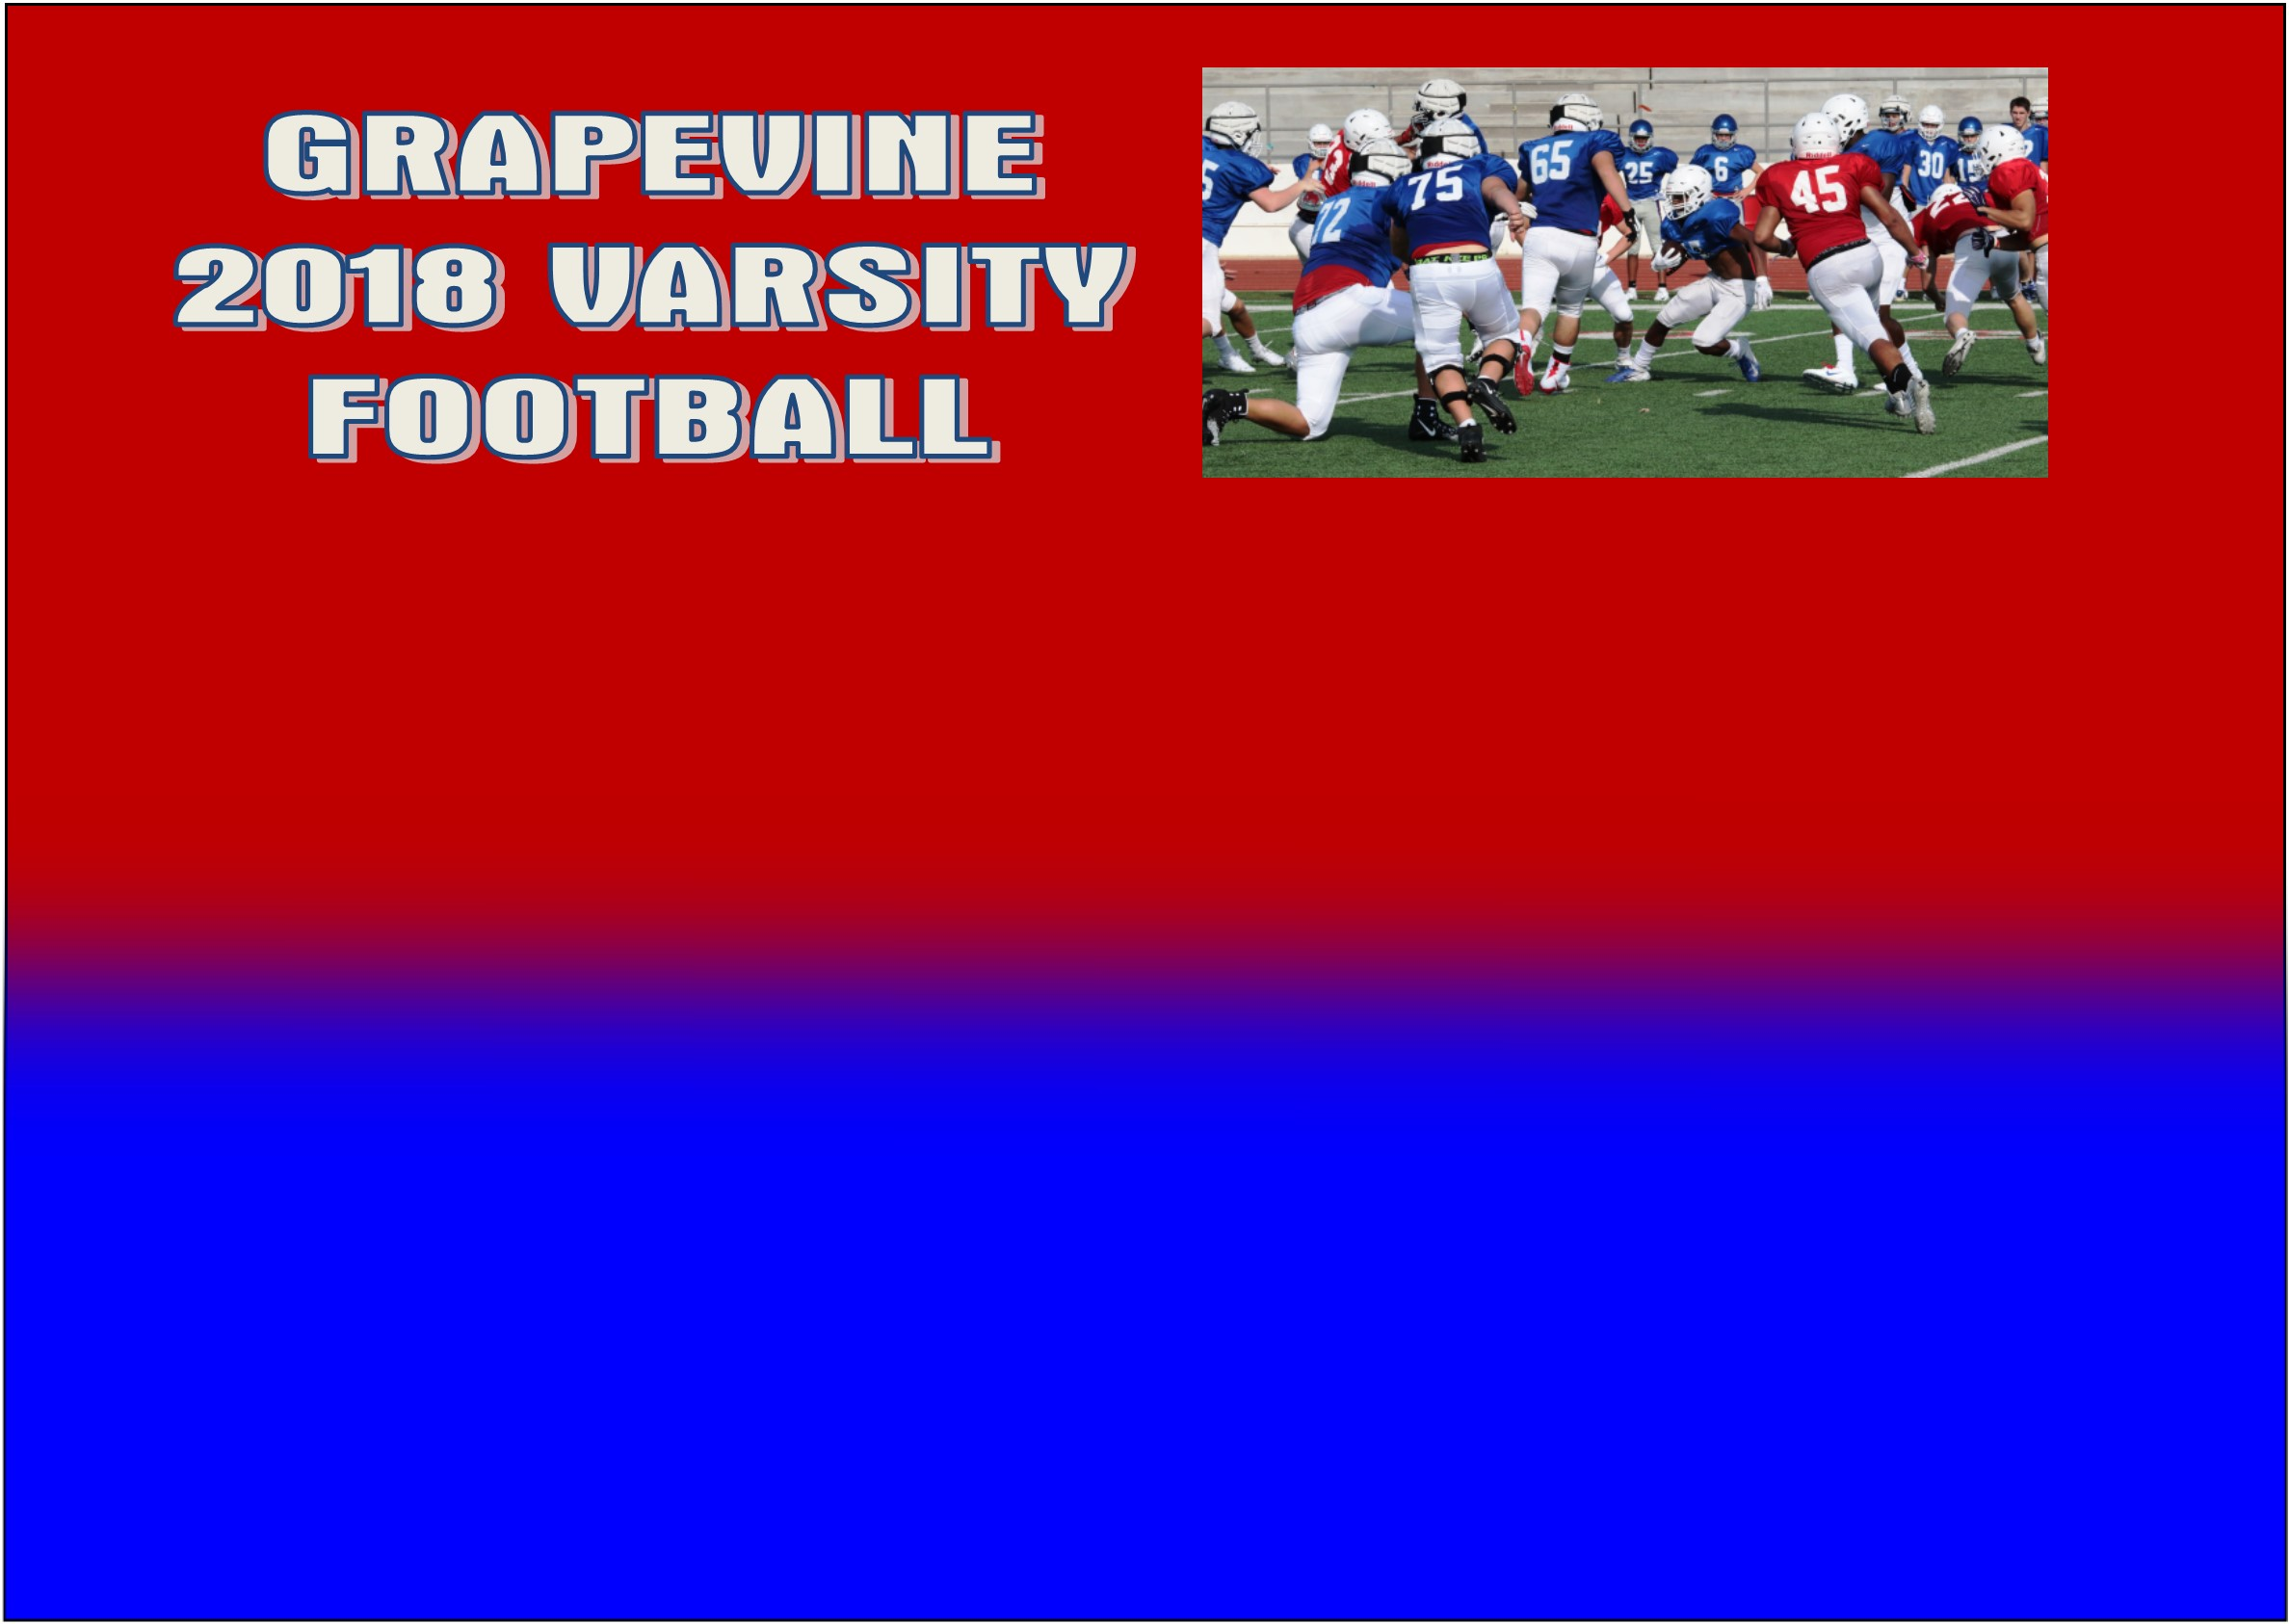 Grapevine Mustangs Holds 2018 Fall Football Kick-Off Practice Scrimmage